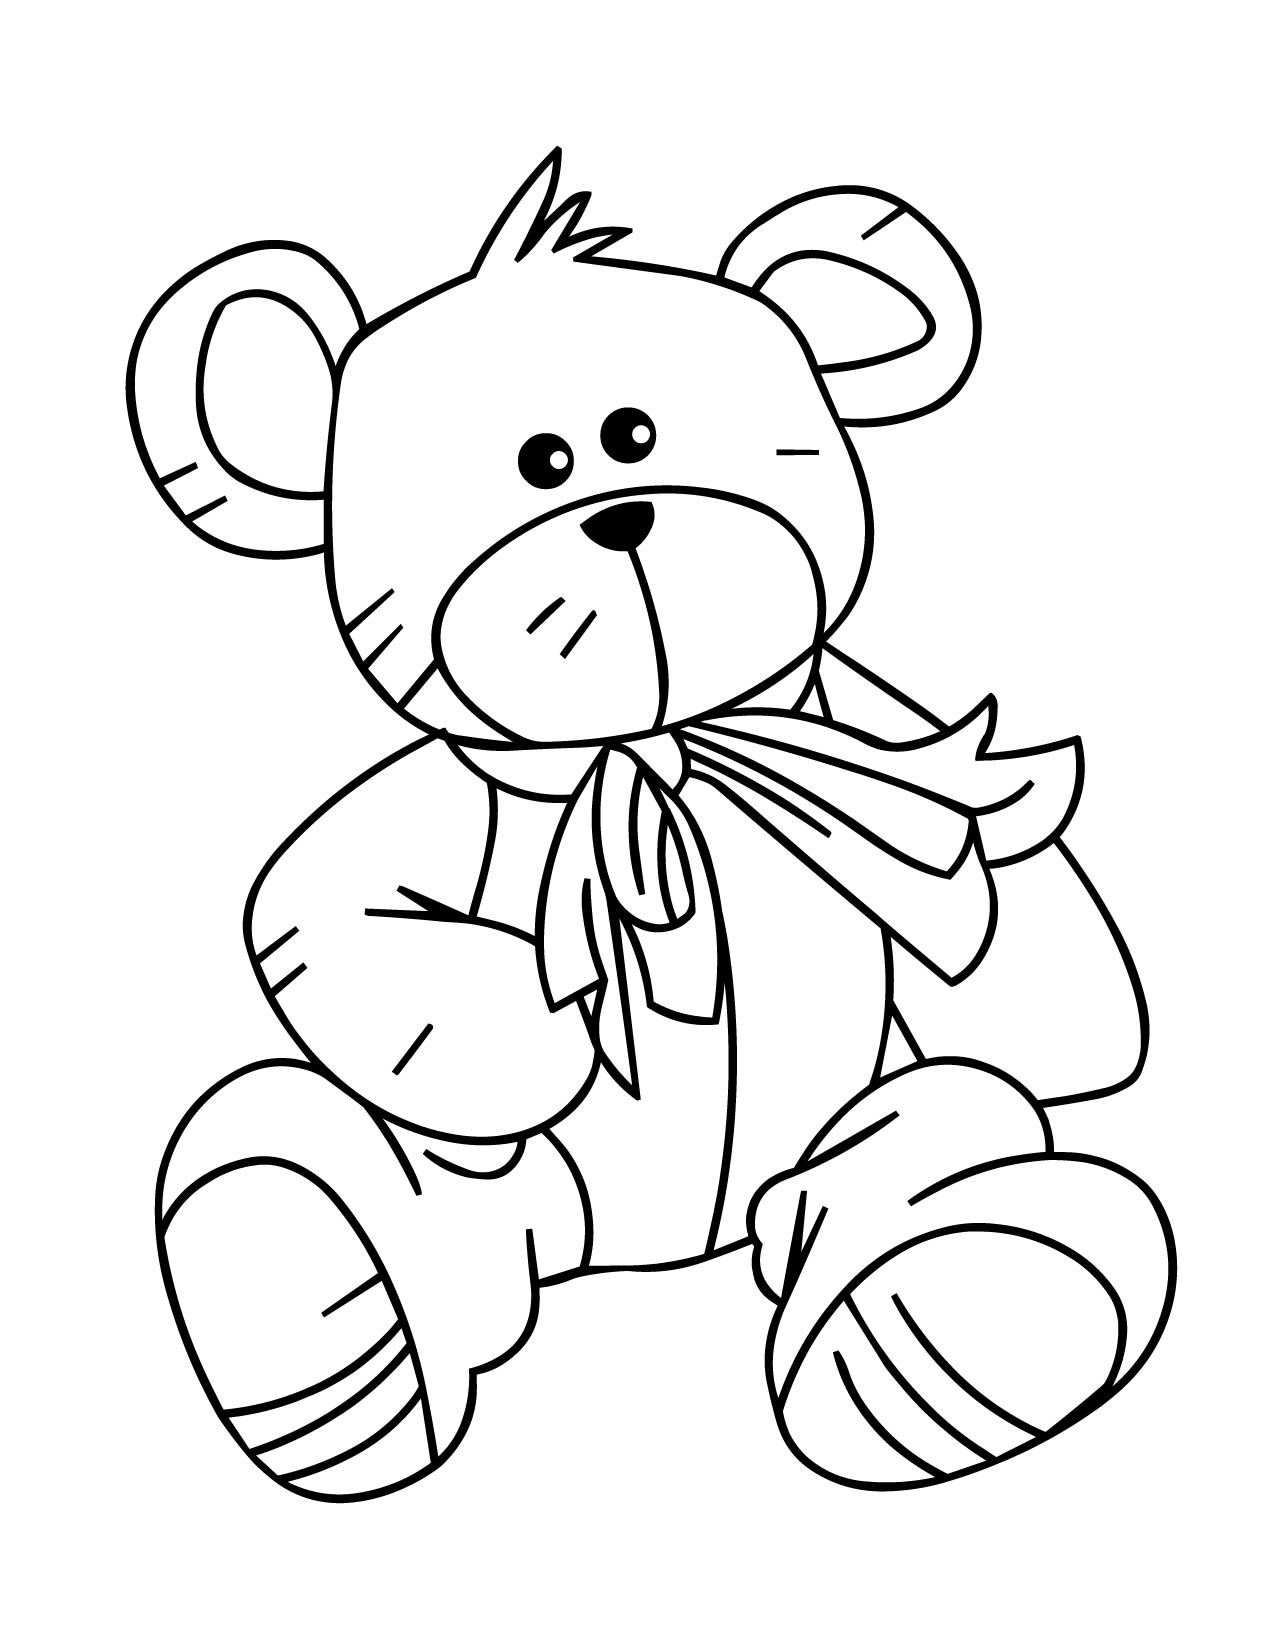 Teddy Bear Coloring Page Handipoints